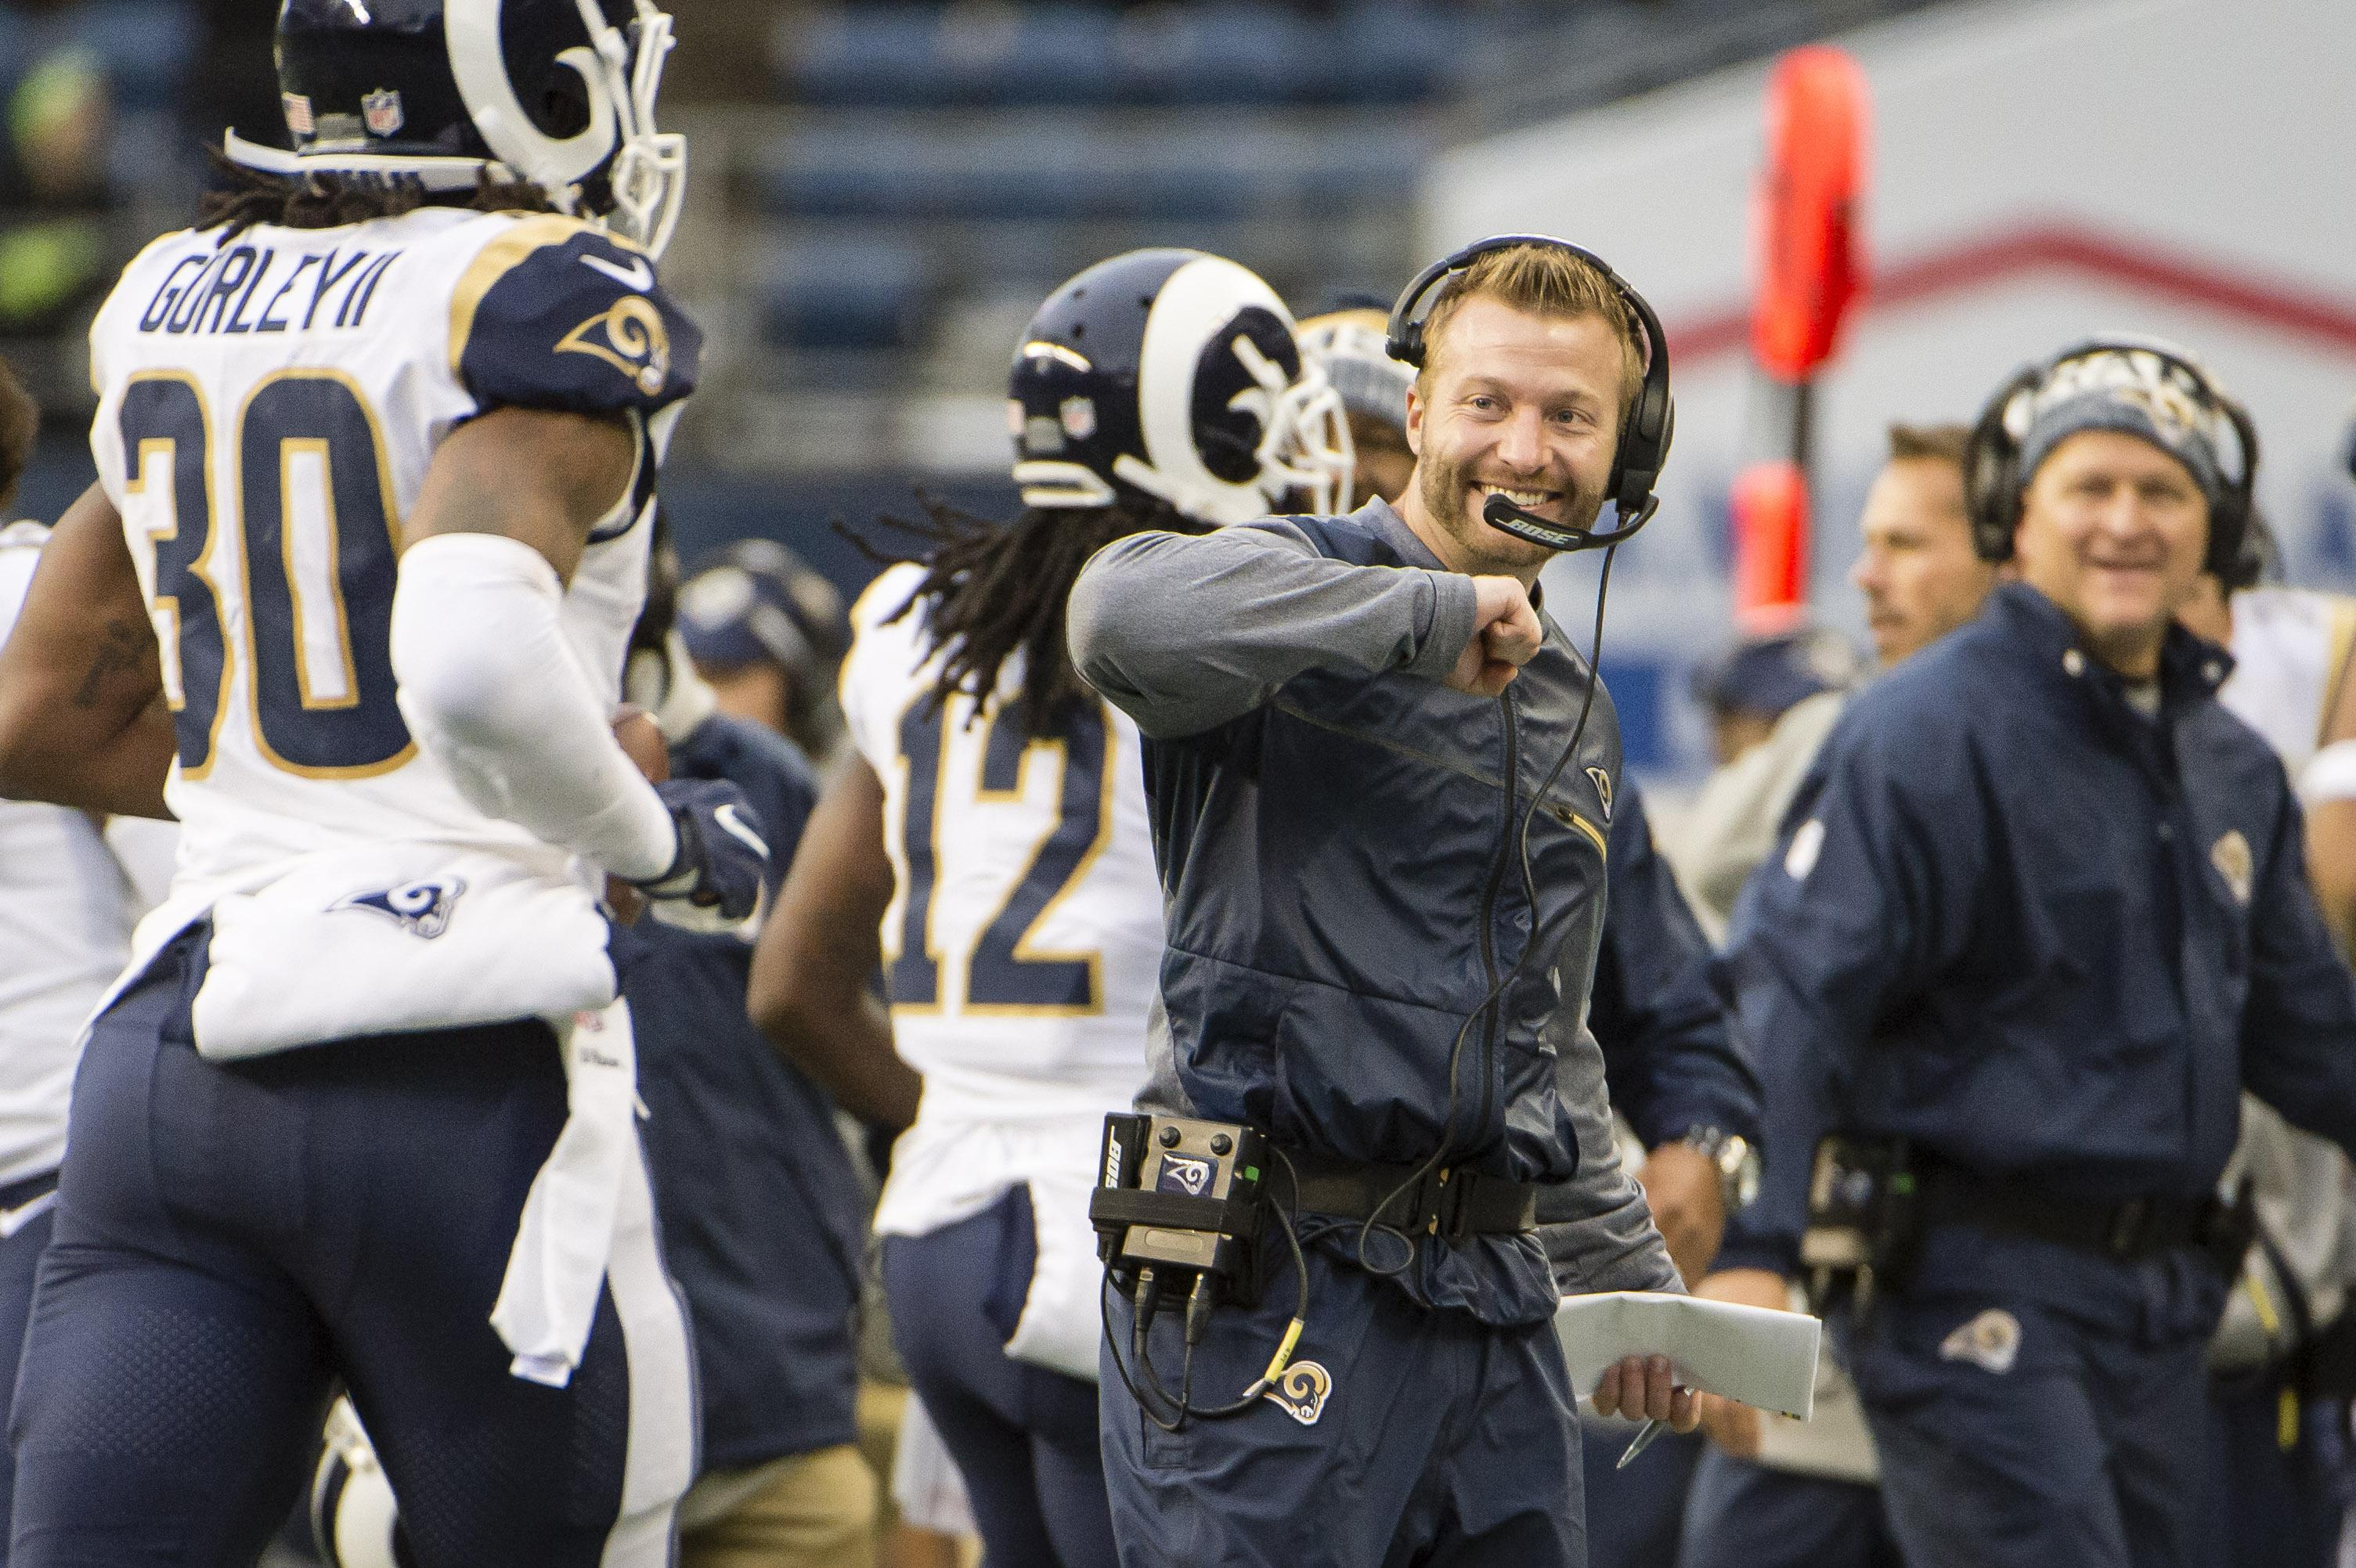 Sean McVay has brought the Rams offence alive since being appointed head coach last year